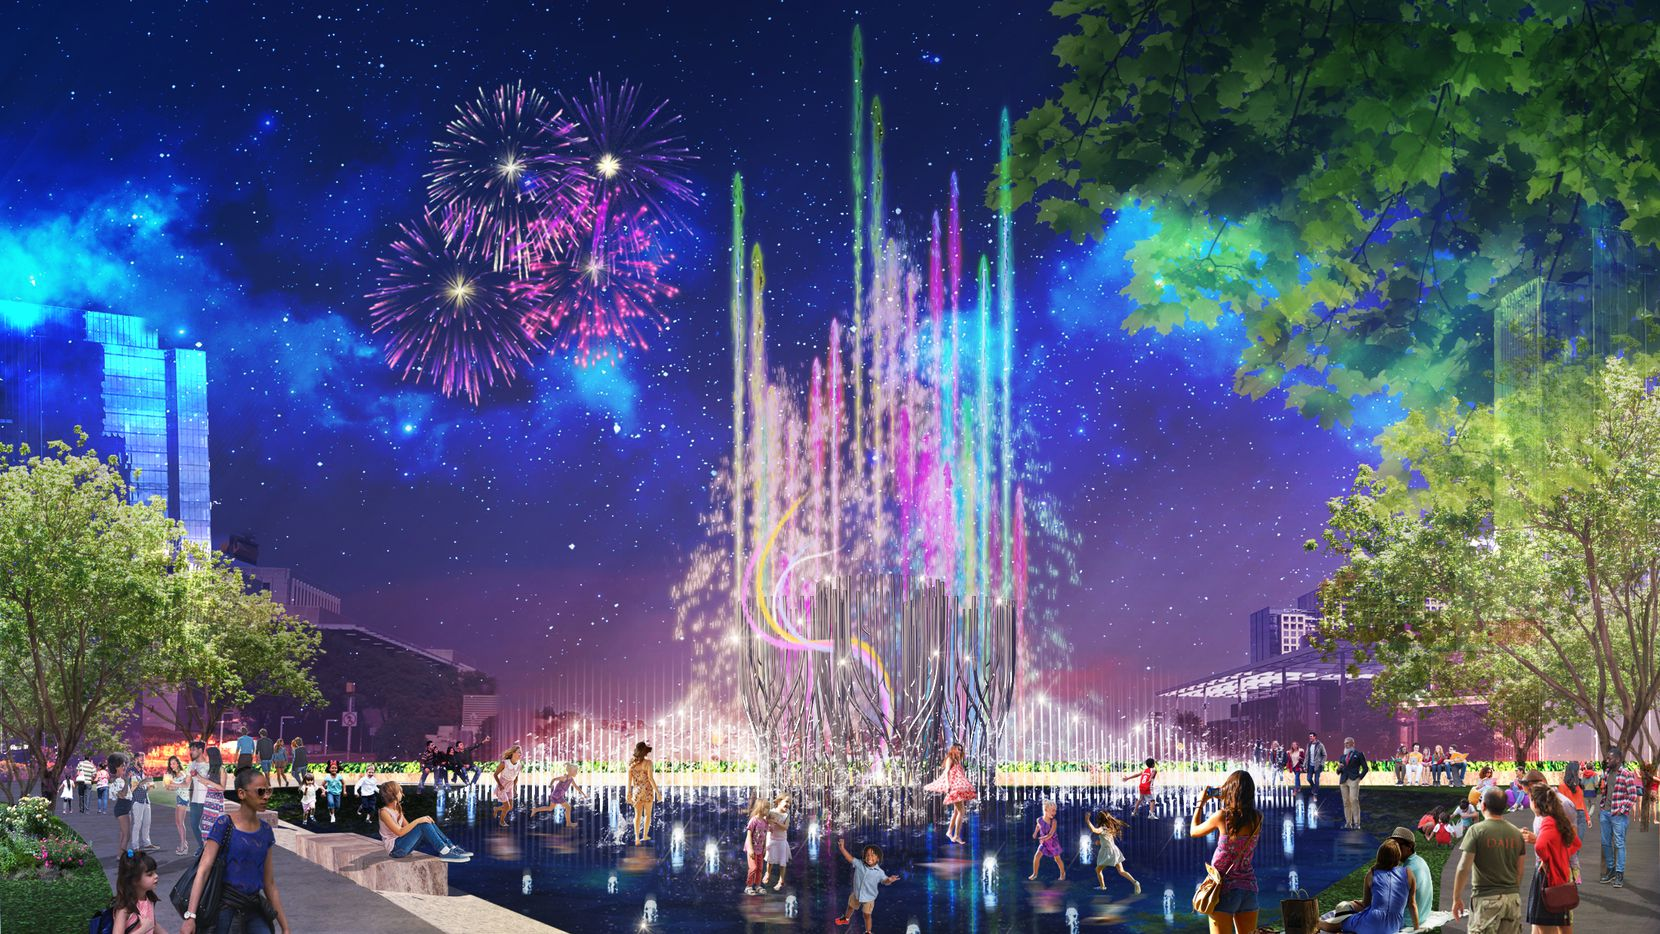 An artist's rendering of the Nancy Best Fountain in Klyde Warren Park, which will feature the world's tallest water jets. Construction on the $10 million project will begin in the summer with completion expected in December 2021.